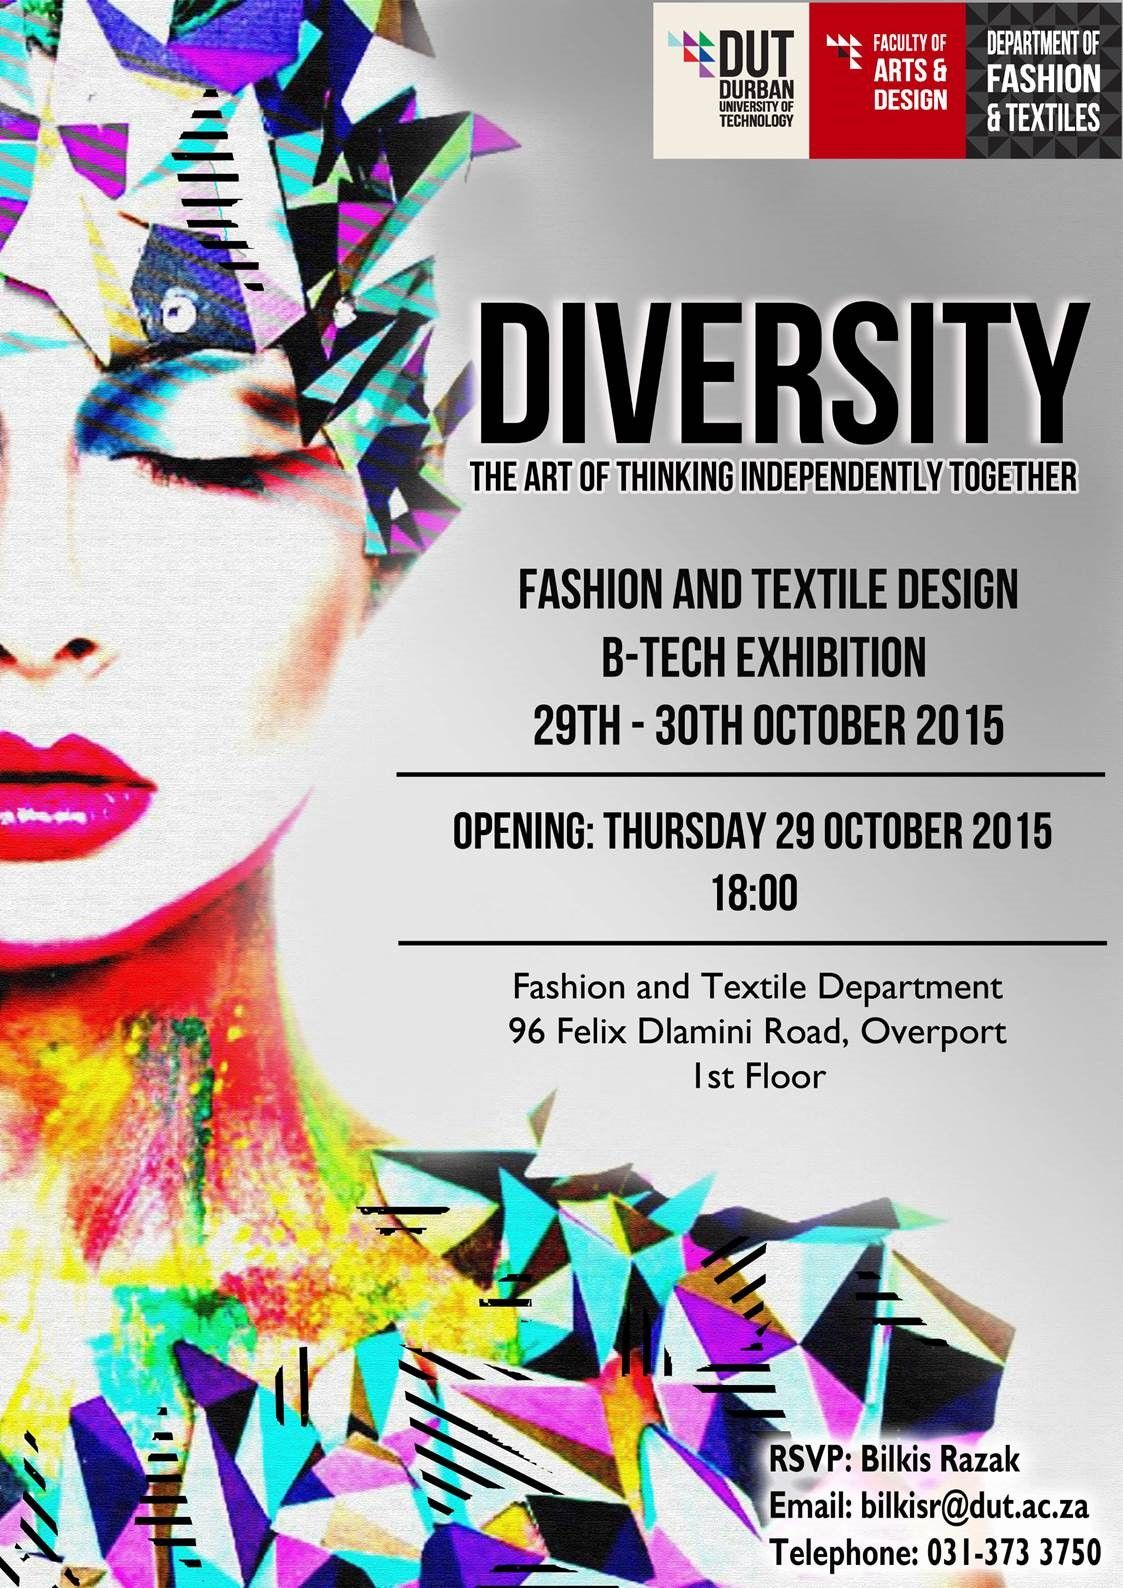 fashion and textile btech exhibition  event  poster